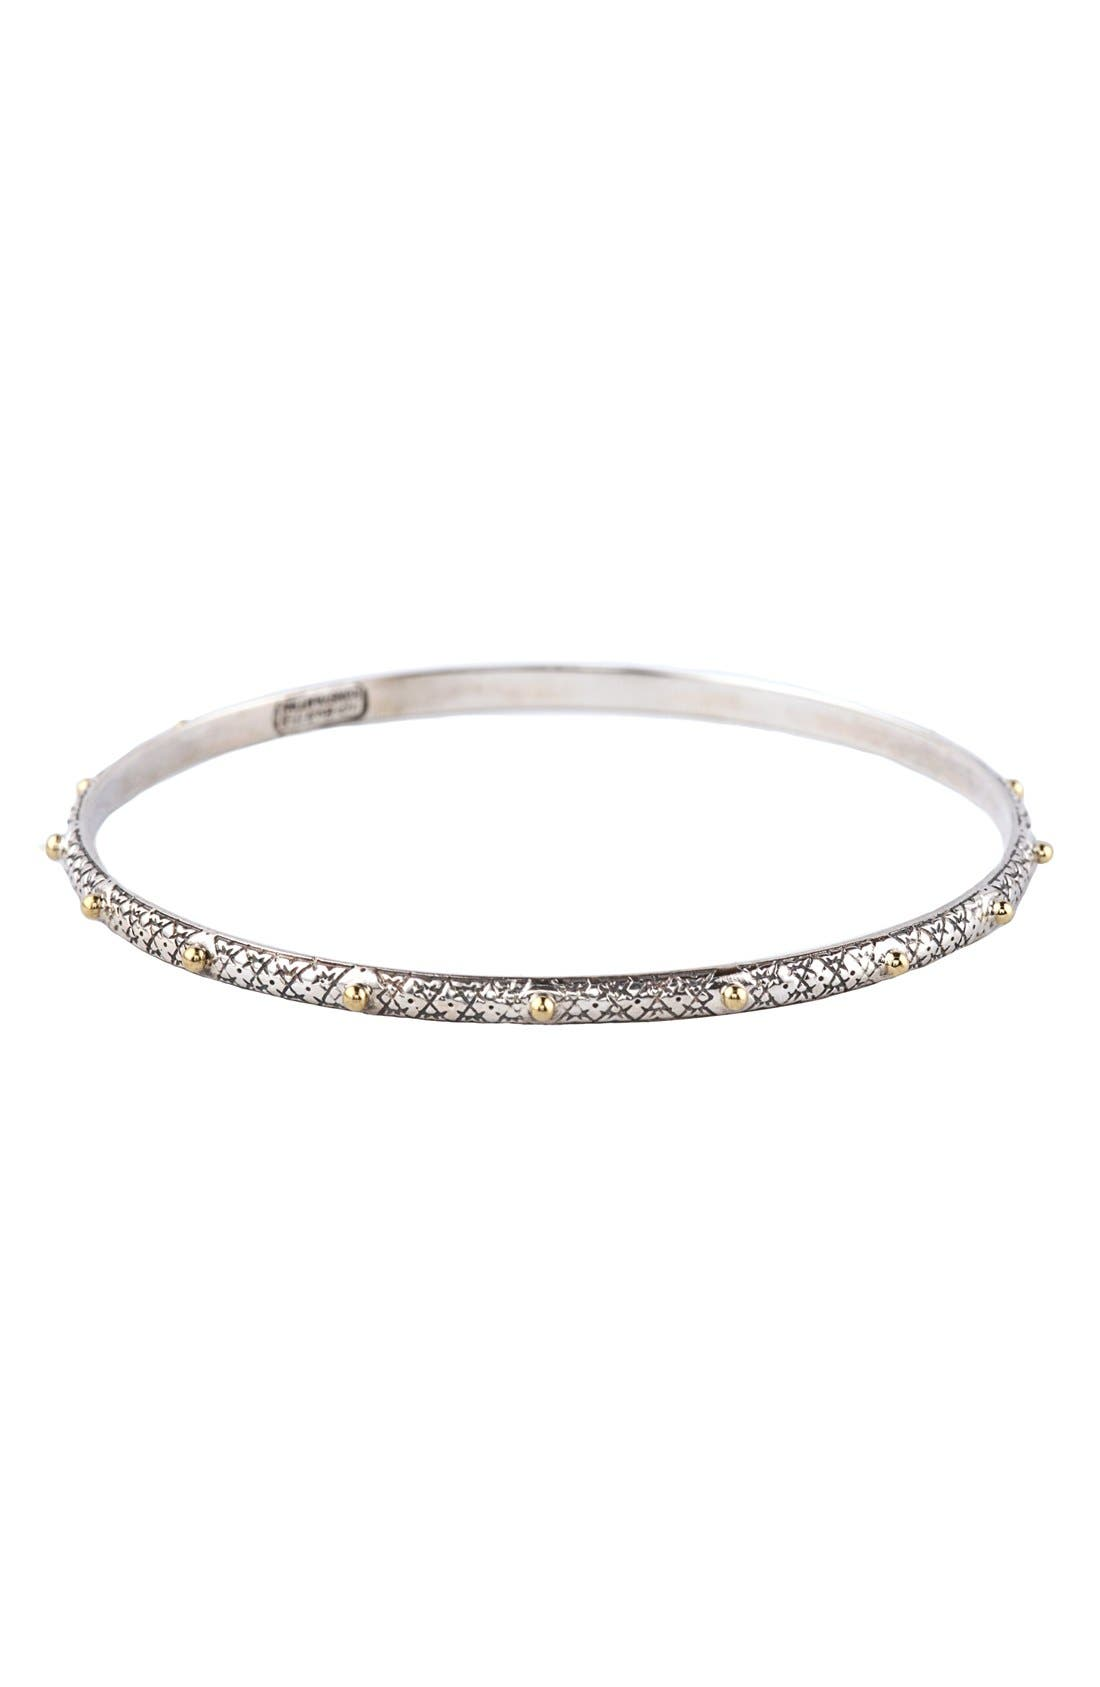 'Classics' Two-Tone Bangle,                             Main thumbnail 1, color,                             Silver/ Gold